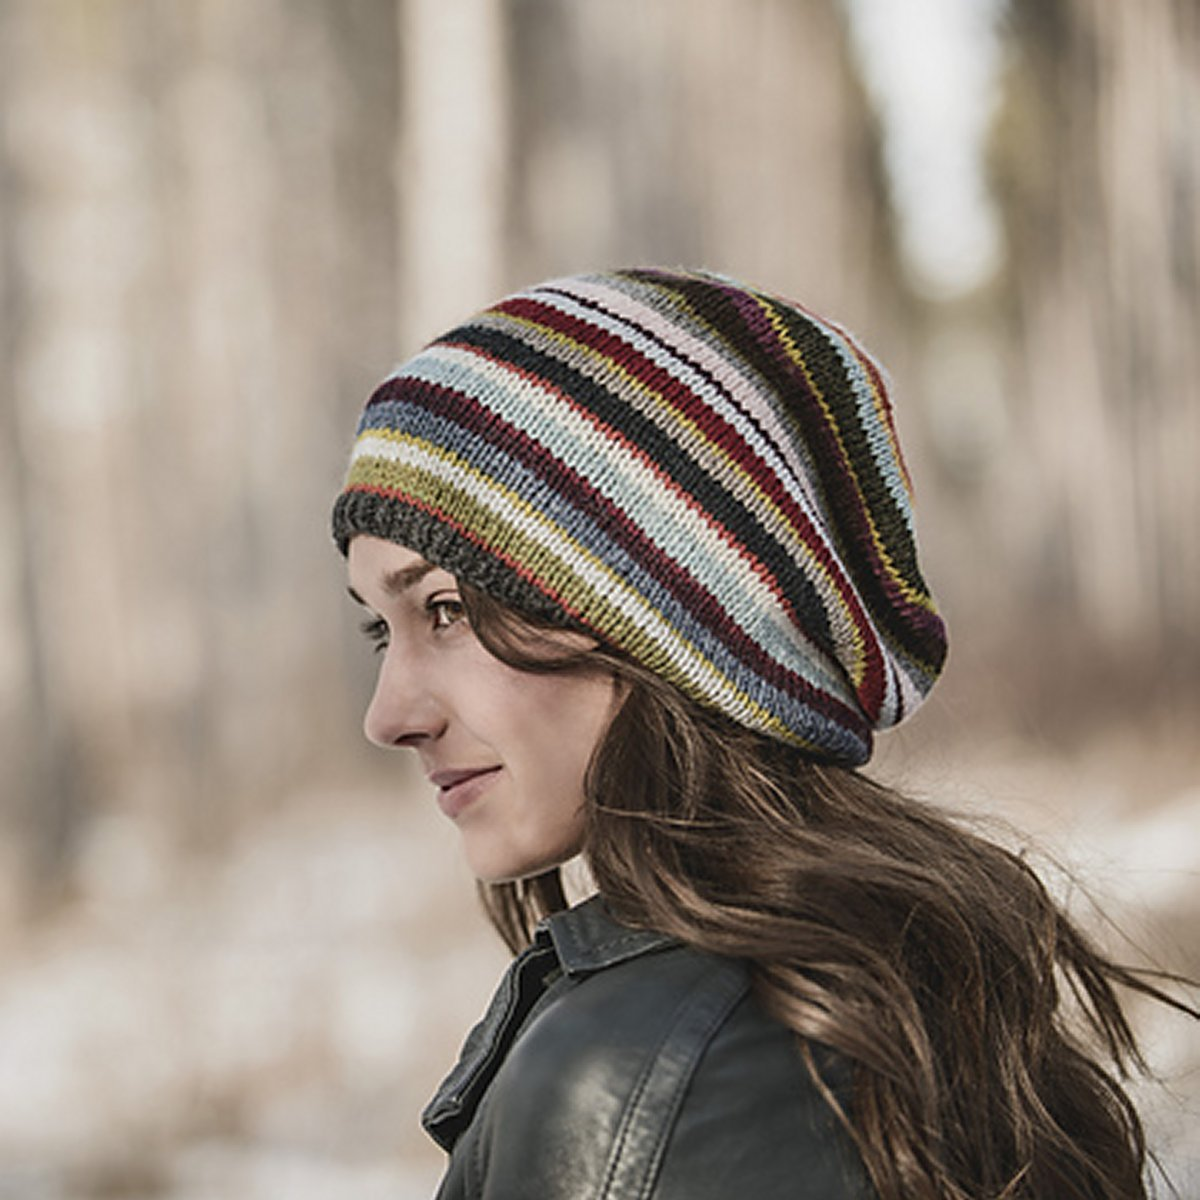 Blue Sky Fibers 21 Color Slouch Hat Kit on a String